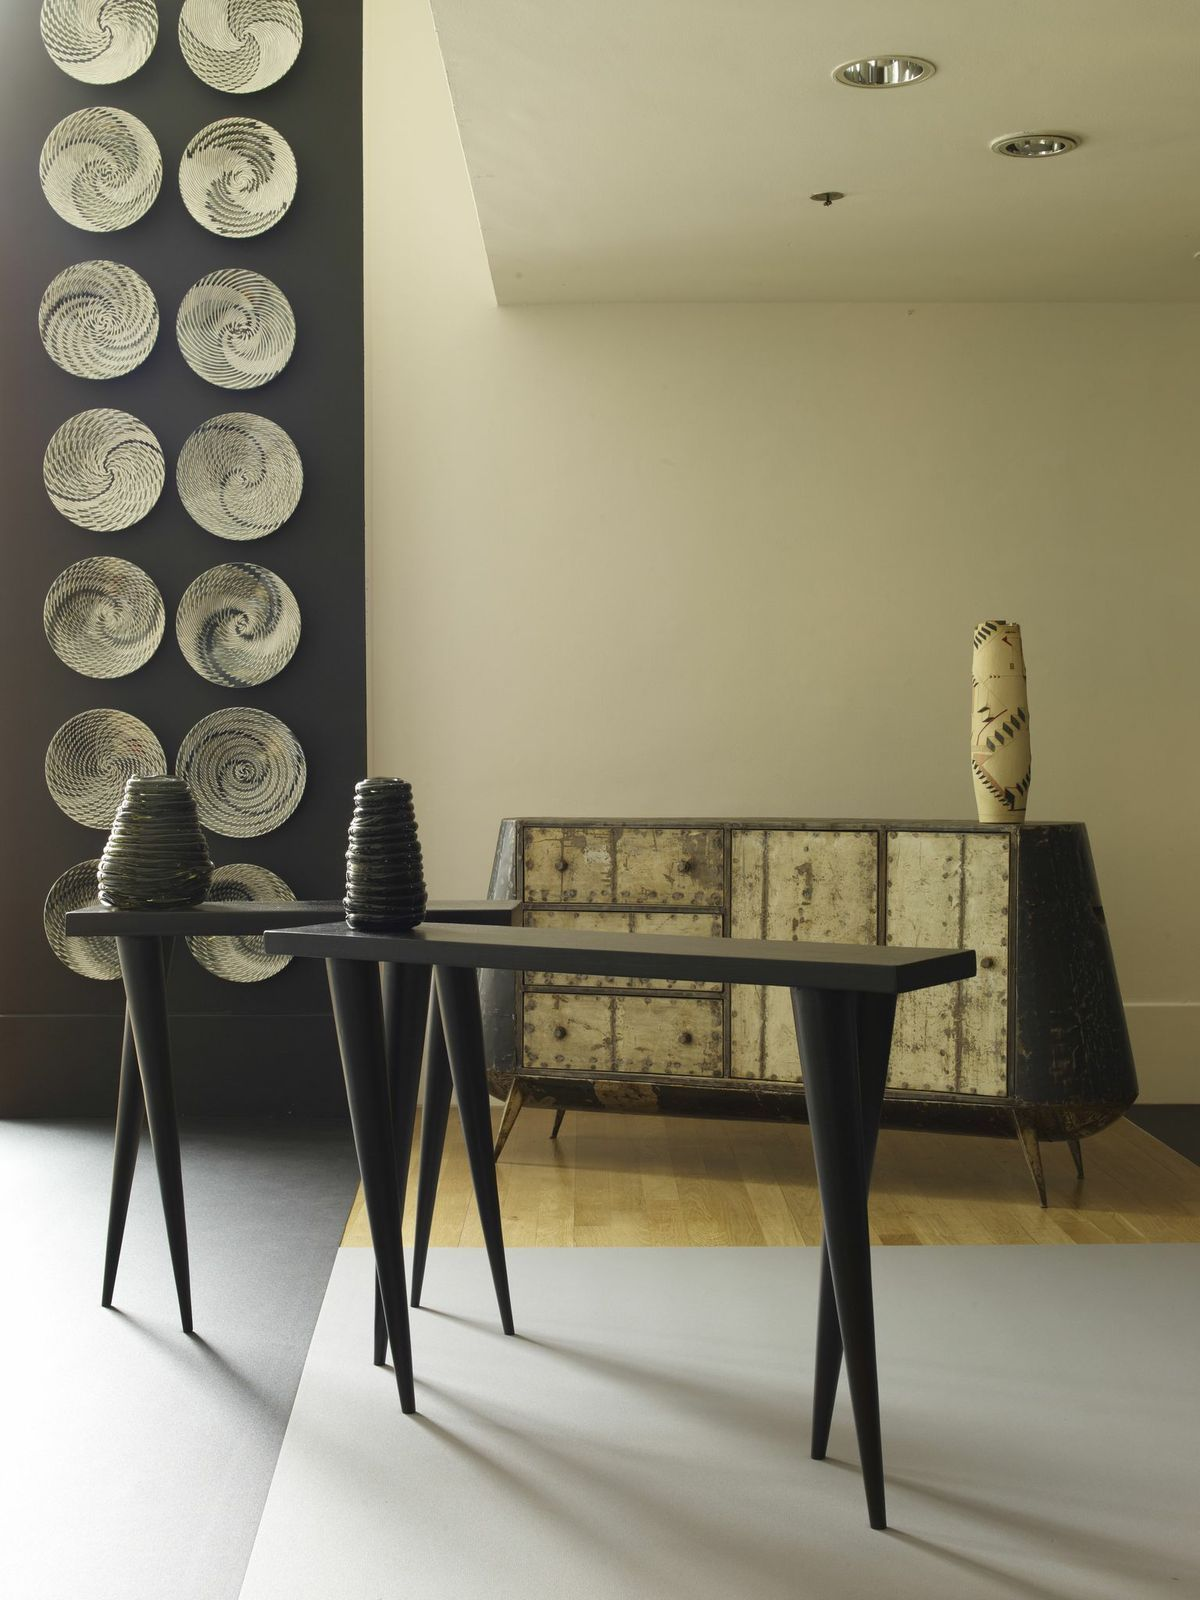 Meuble Africain Design Pin By Charmain Leslie On African Inspired Mobilier De Salon